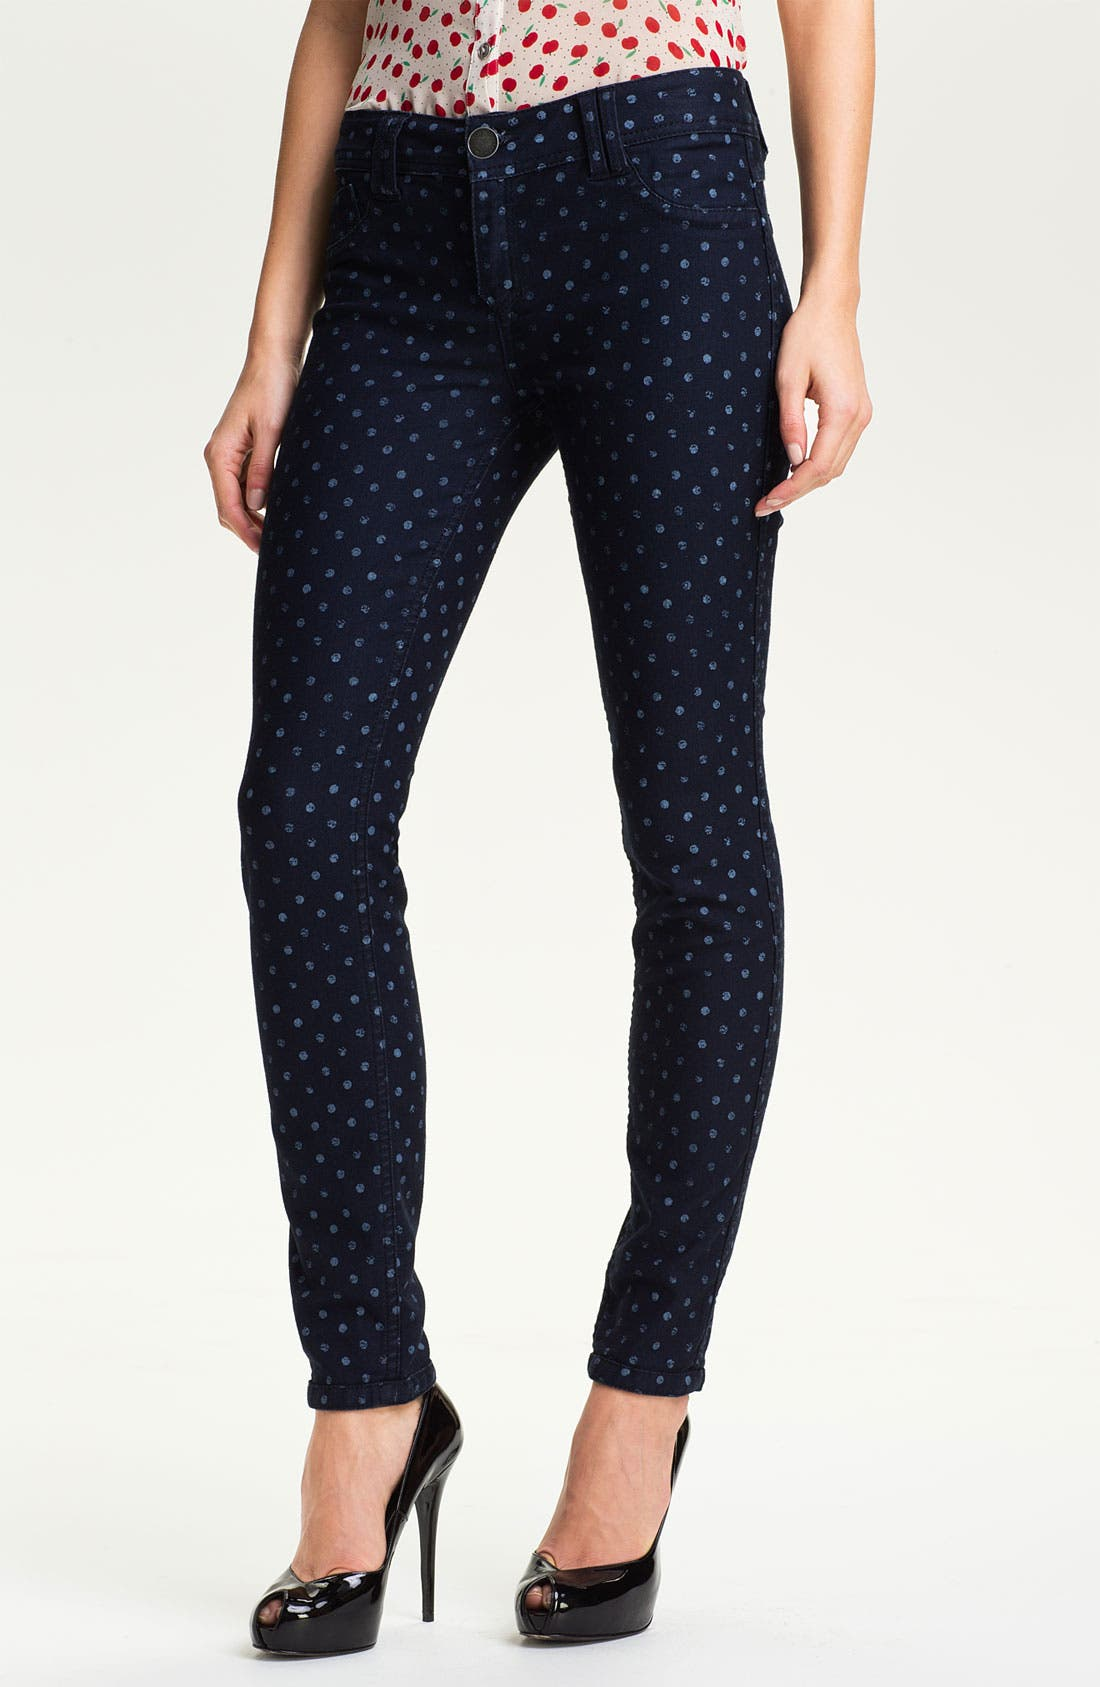 Alternate Image 1 Selected - Wit & Wisdom Reversible Dot Print Skinny Jeans (Nordstrom Exclusive)